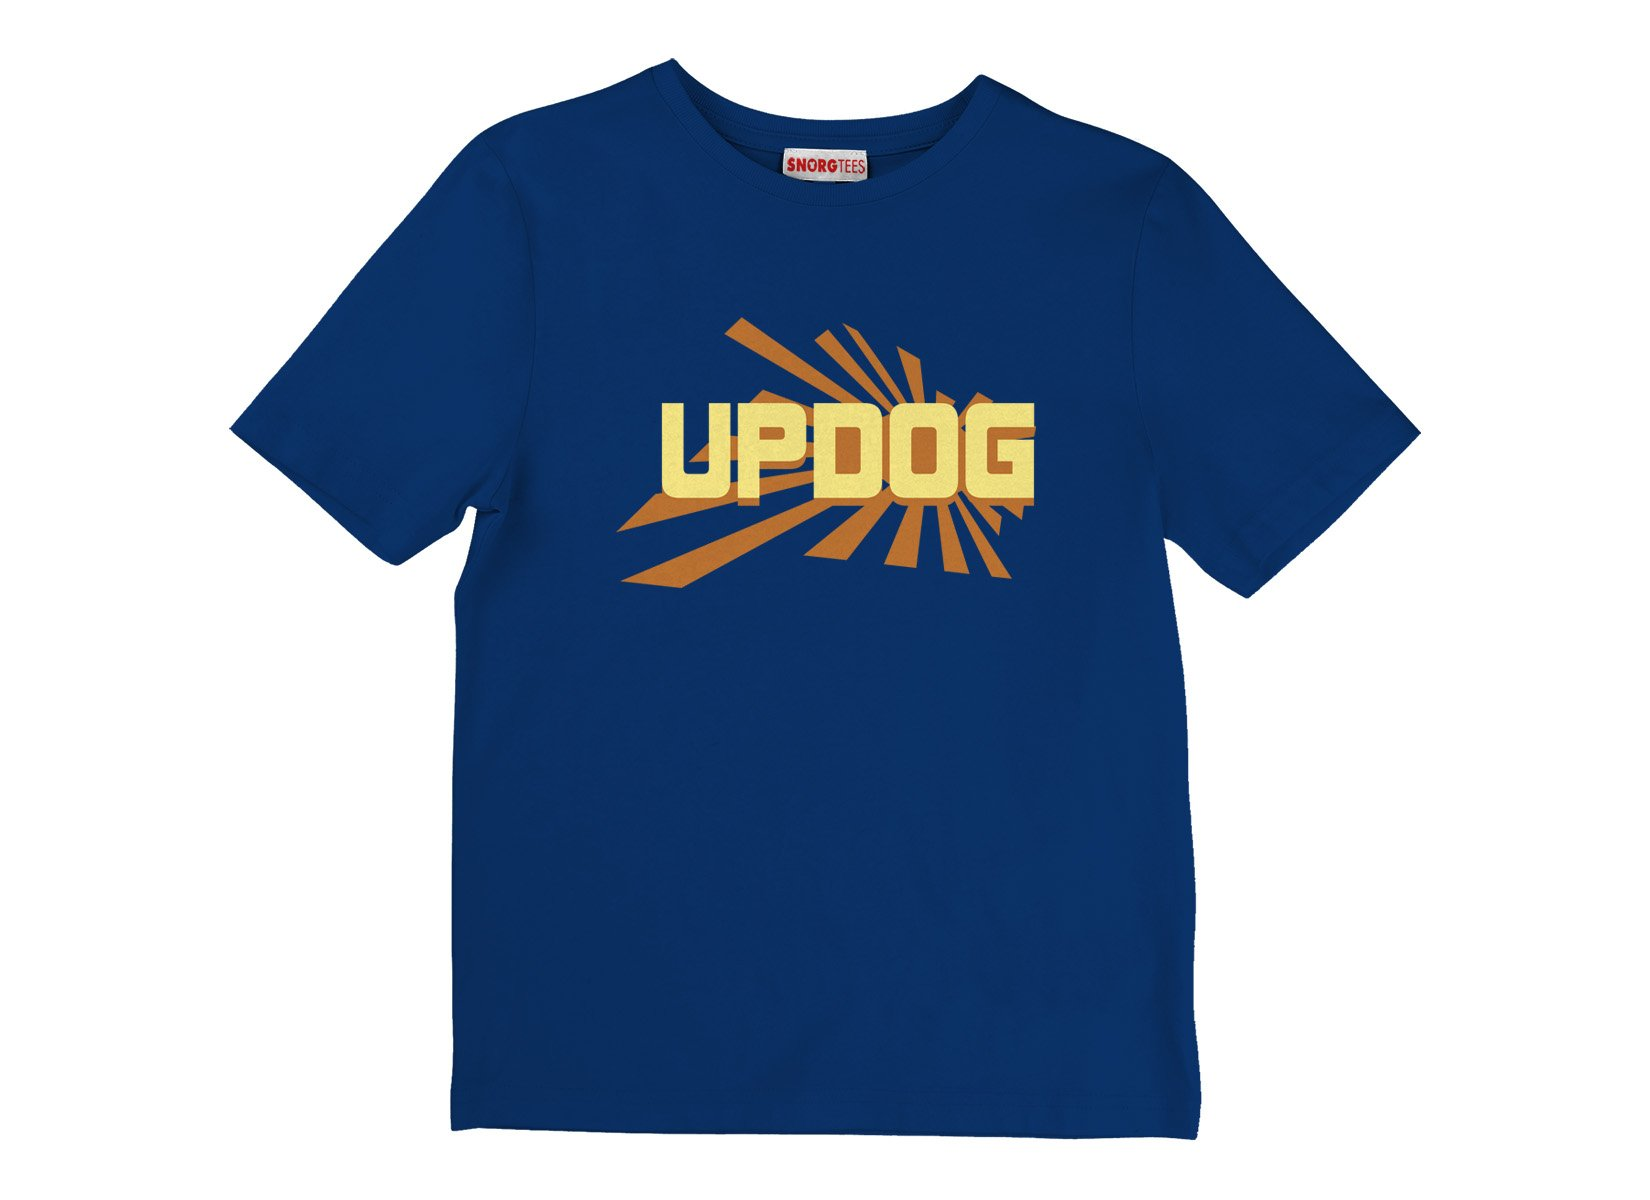 Updog on Kids T-Shirt